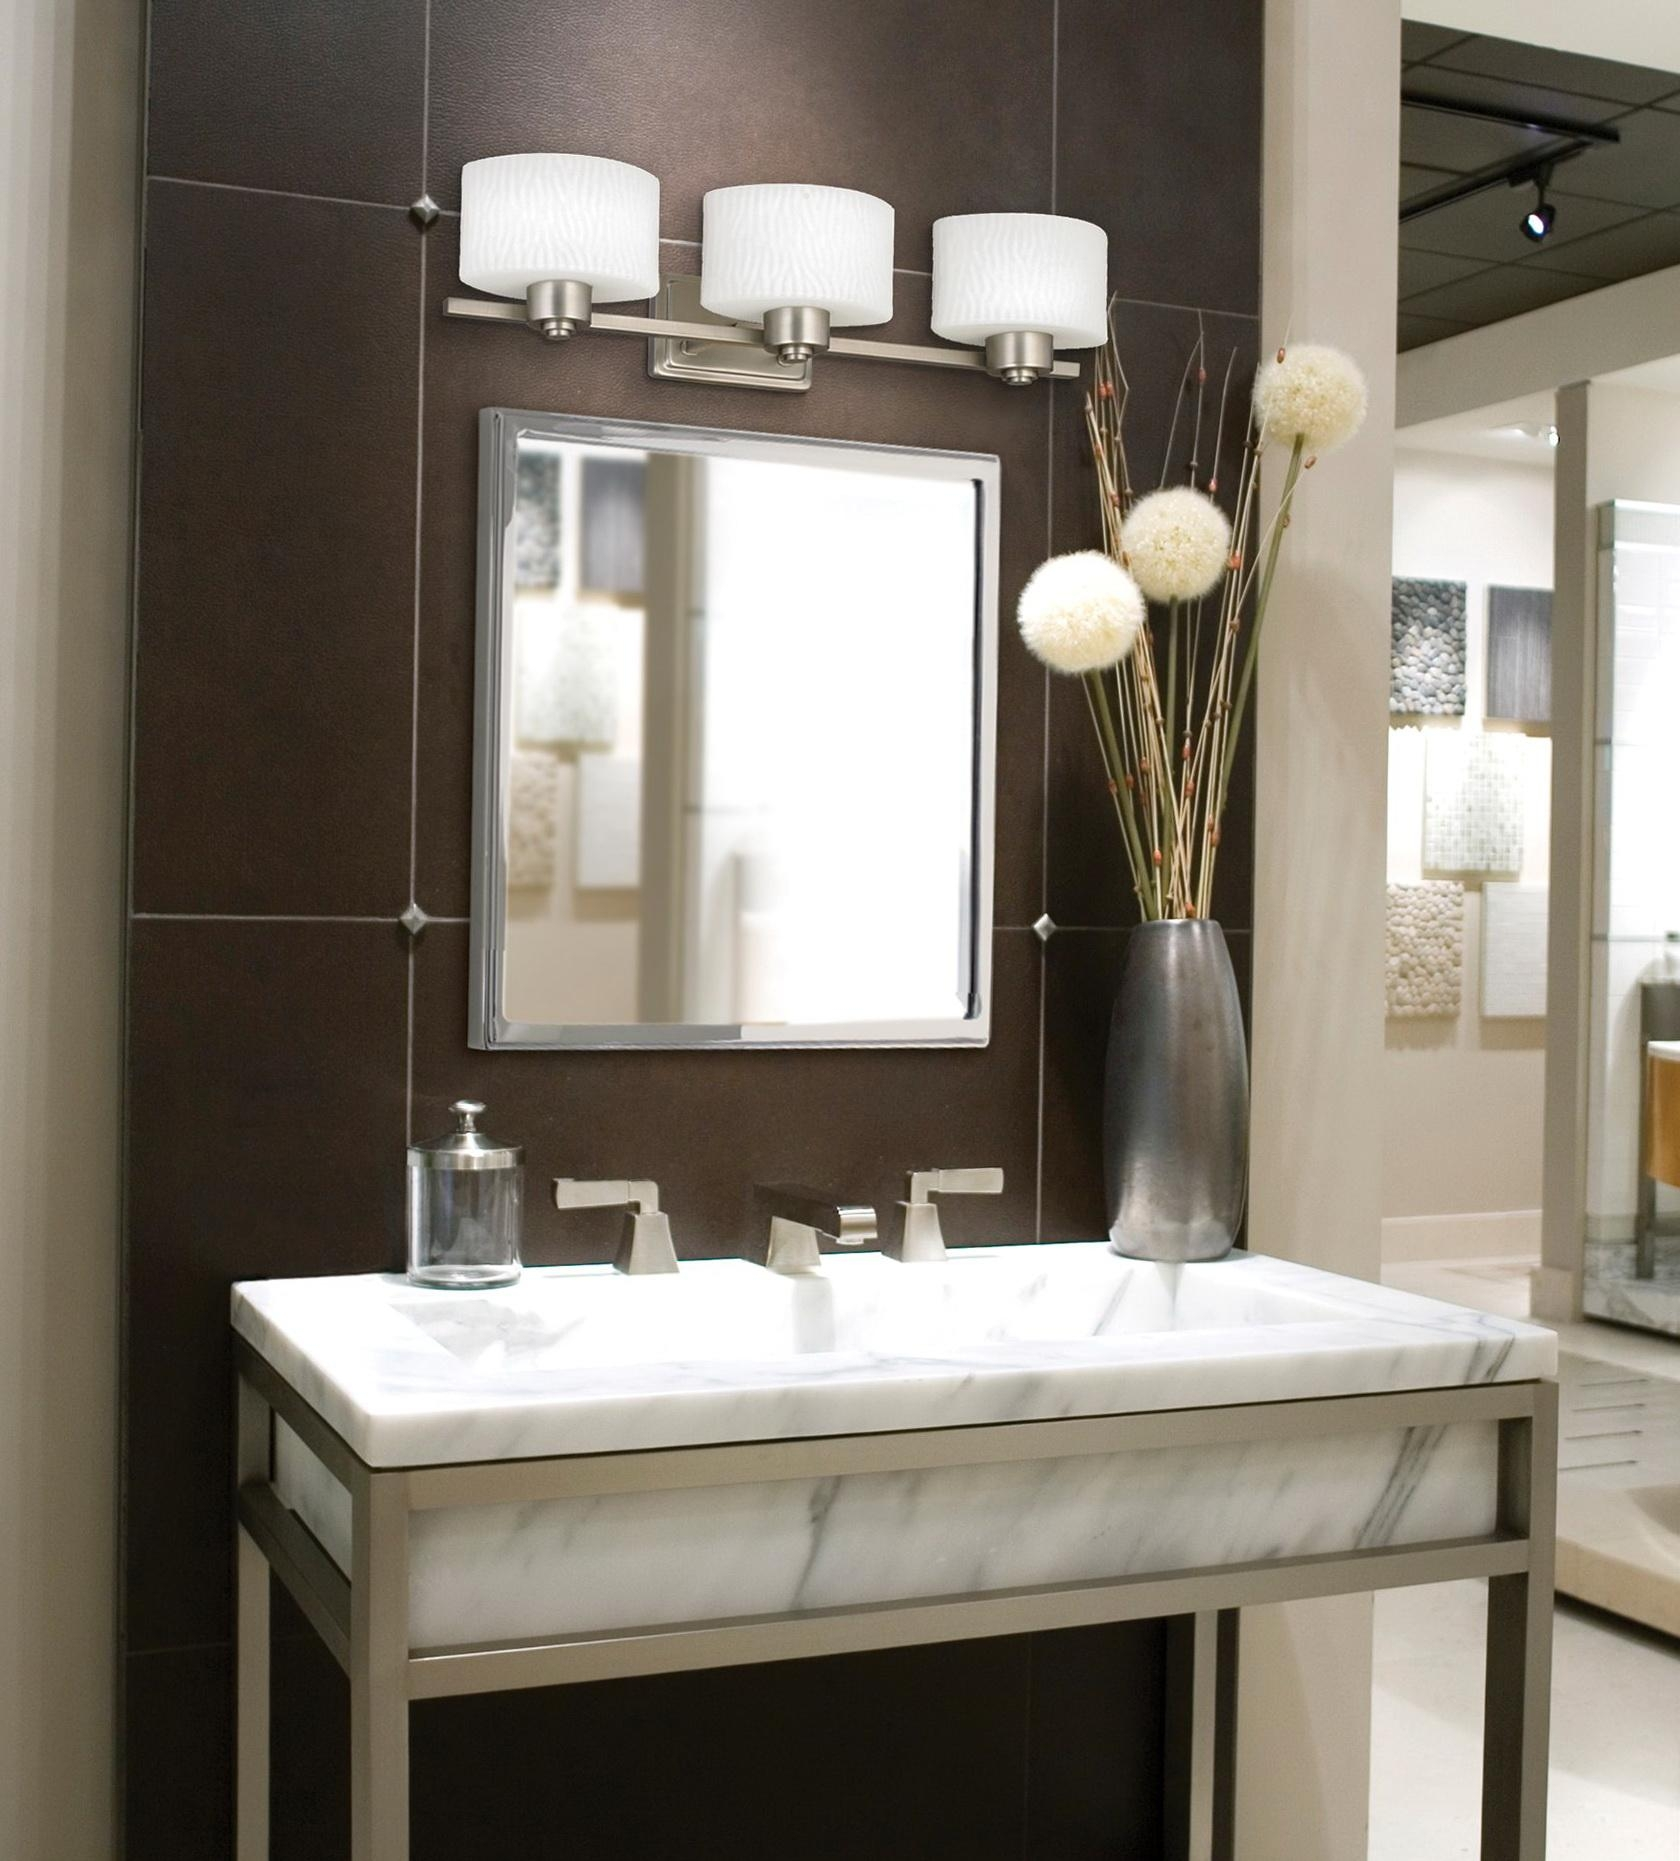 Wondrous Bathroom Vanity Mirrors For Com Ideas Brushed Nickel Pertaining To Bathroom Vanity Mirrors (Image 20 of 20)